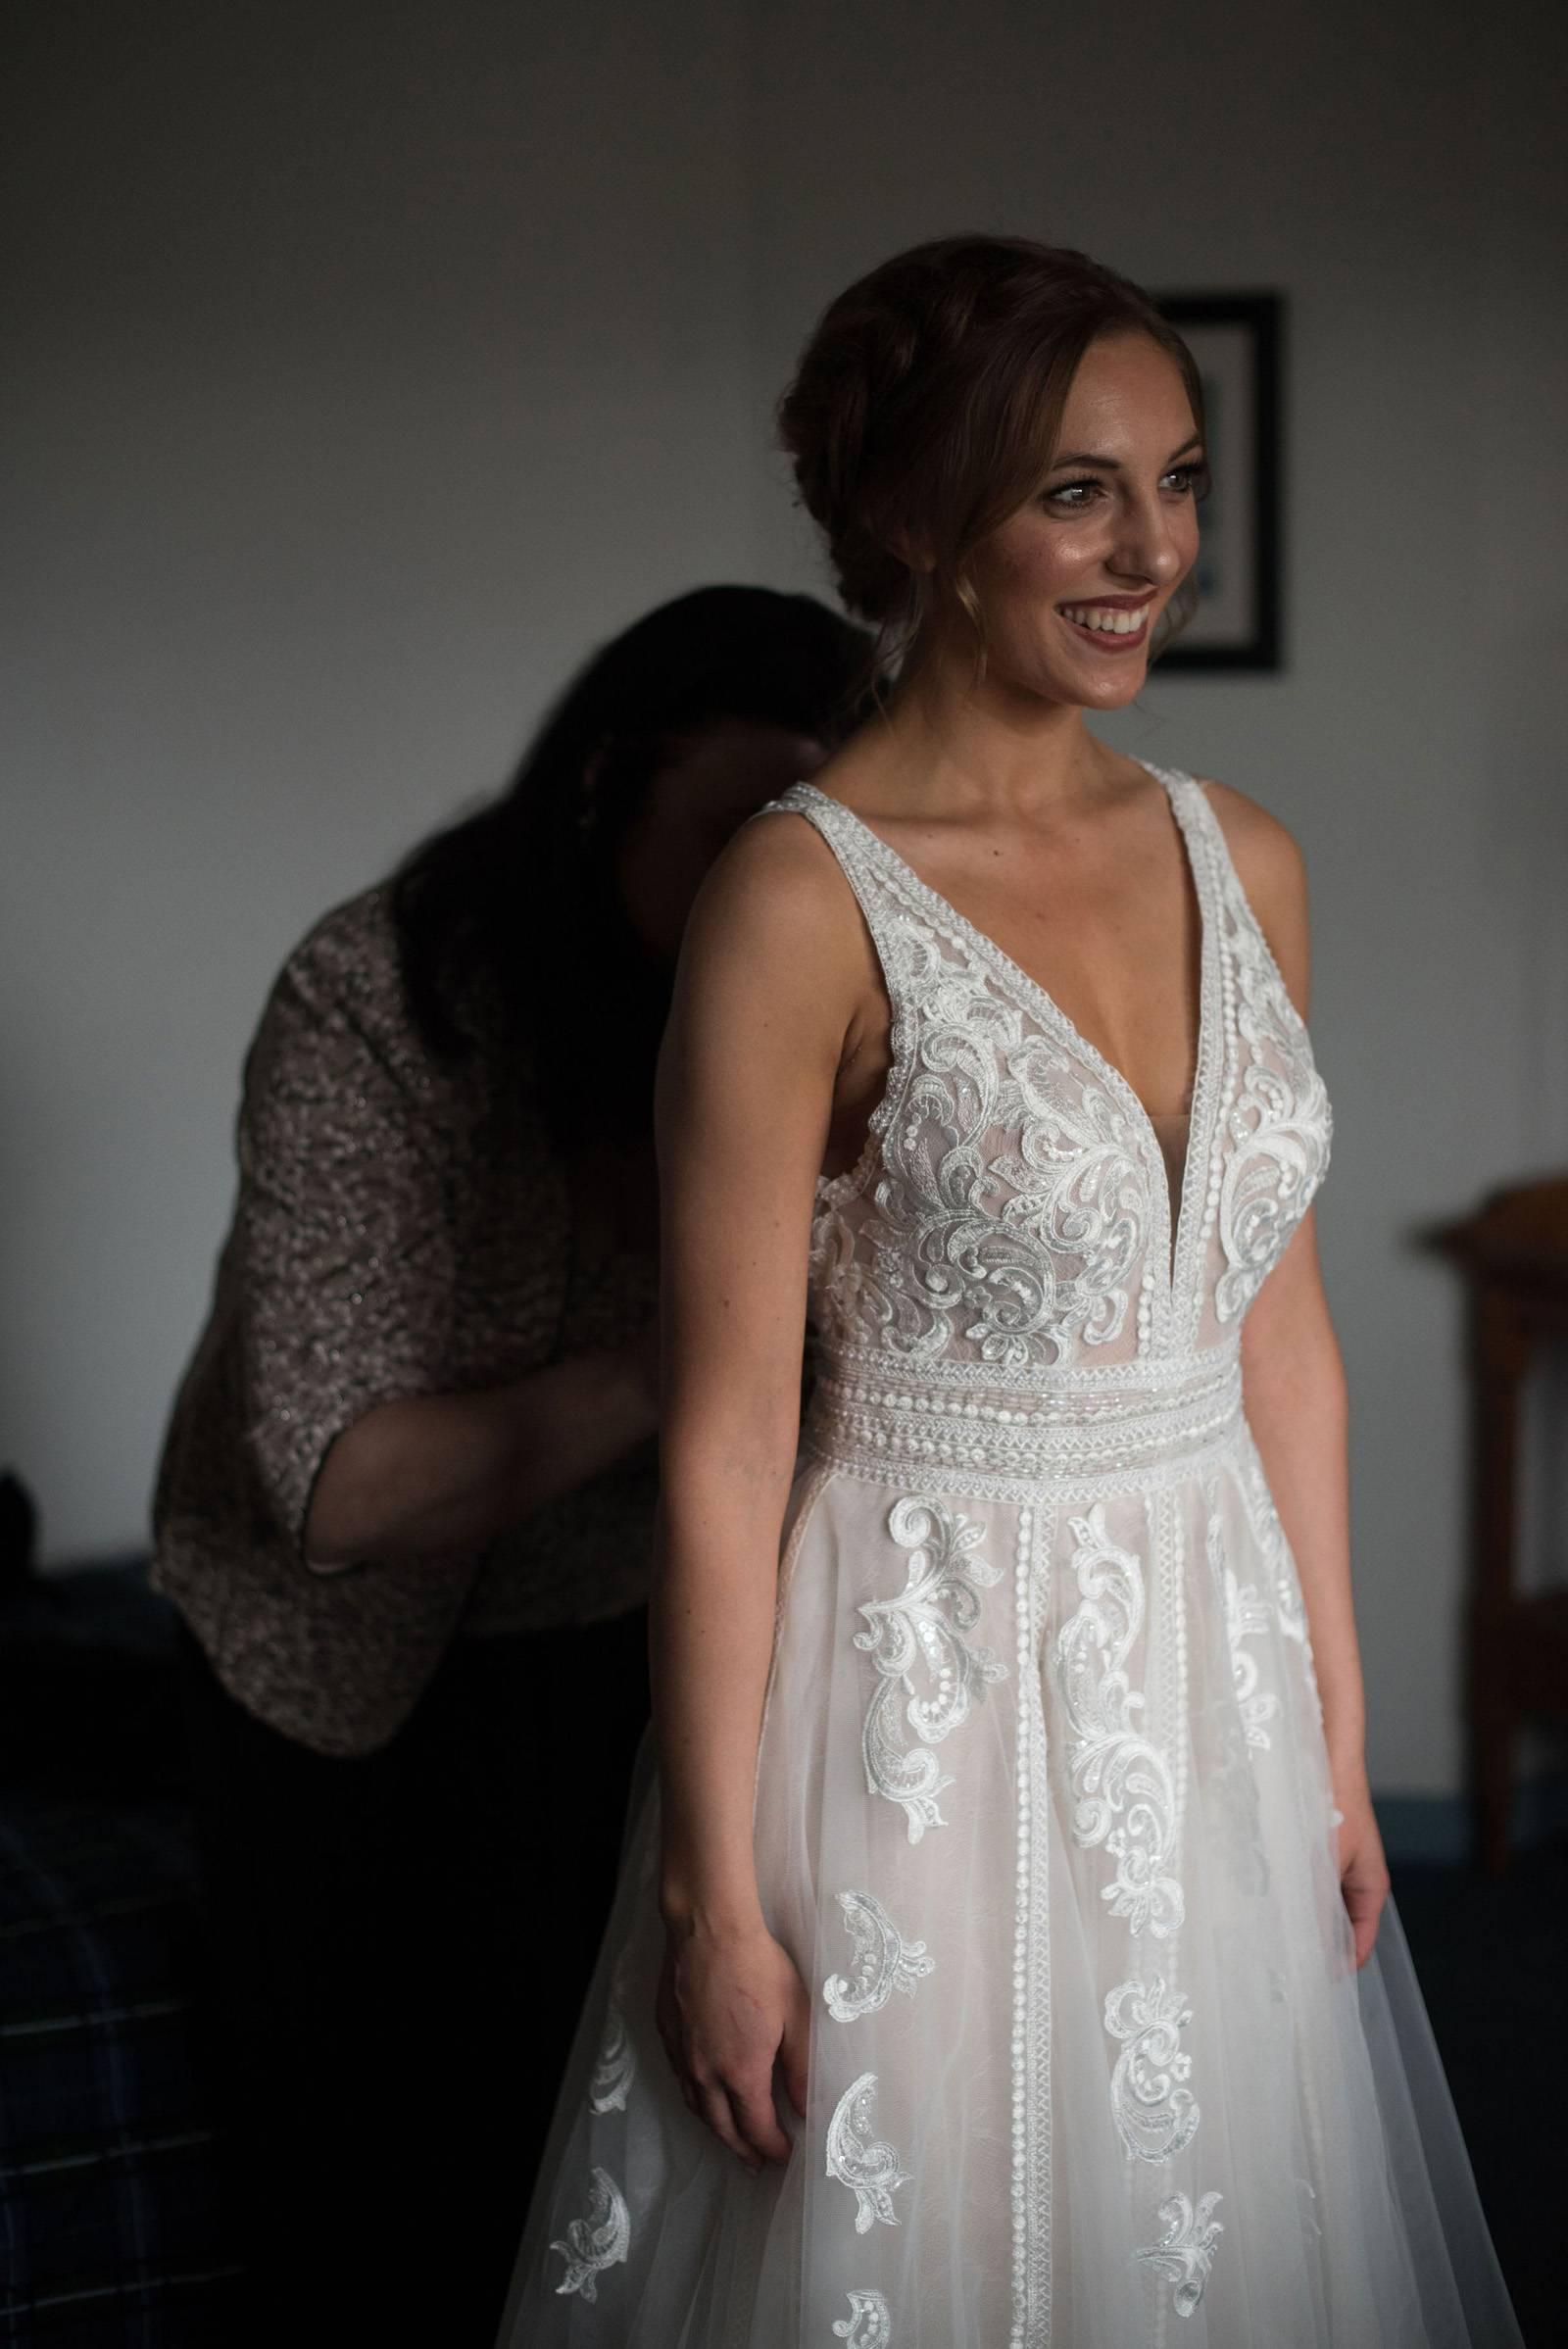 bride putting on her wedding dress with her mom's help